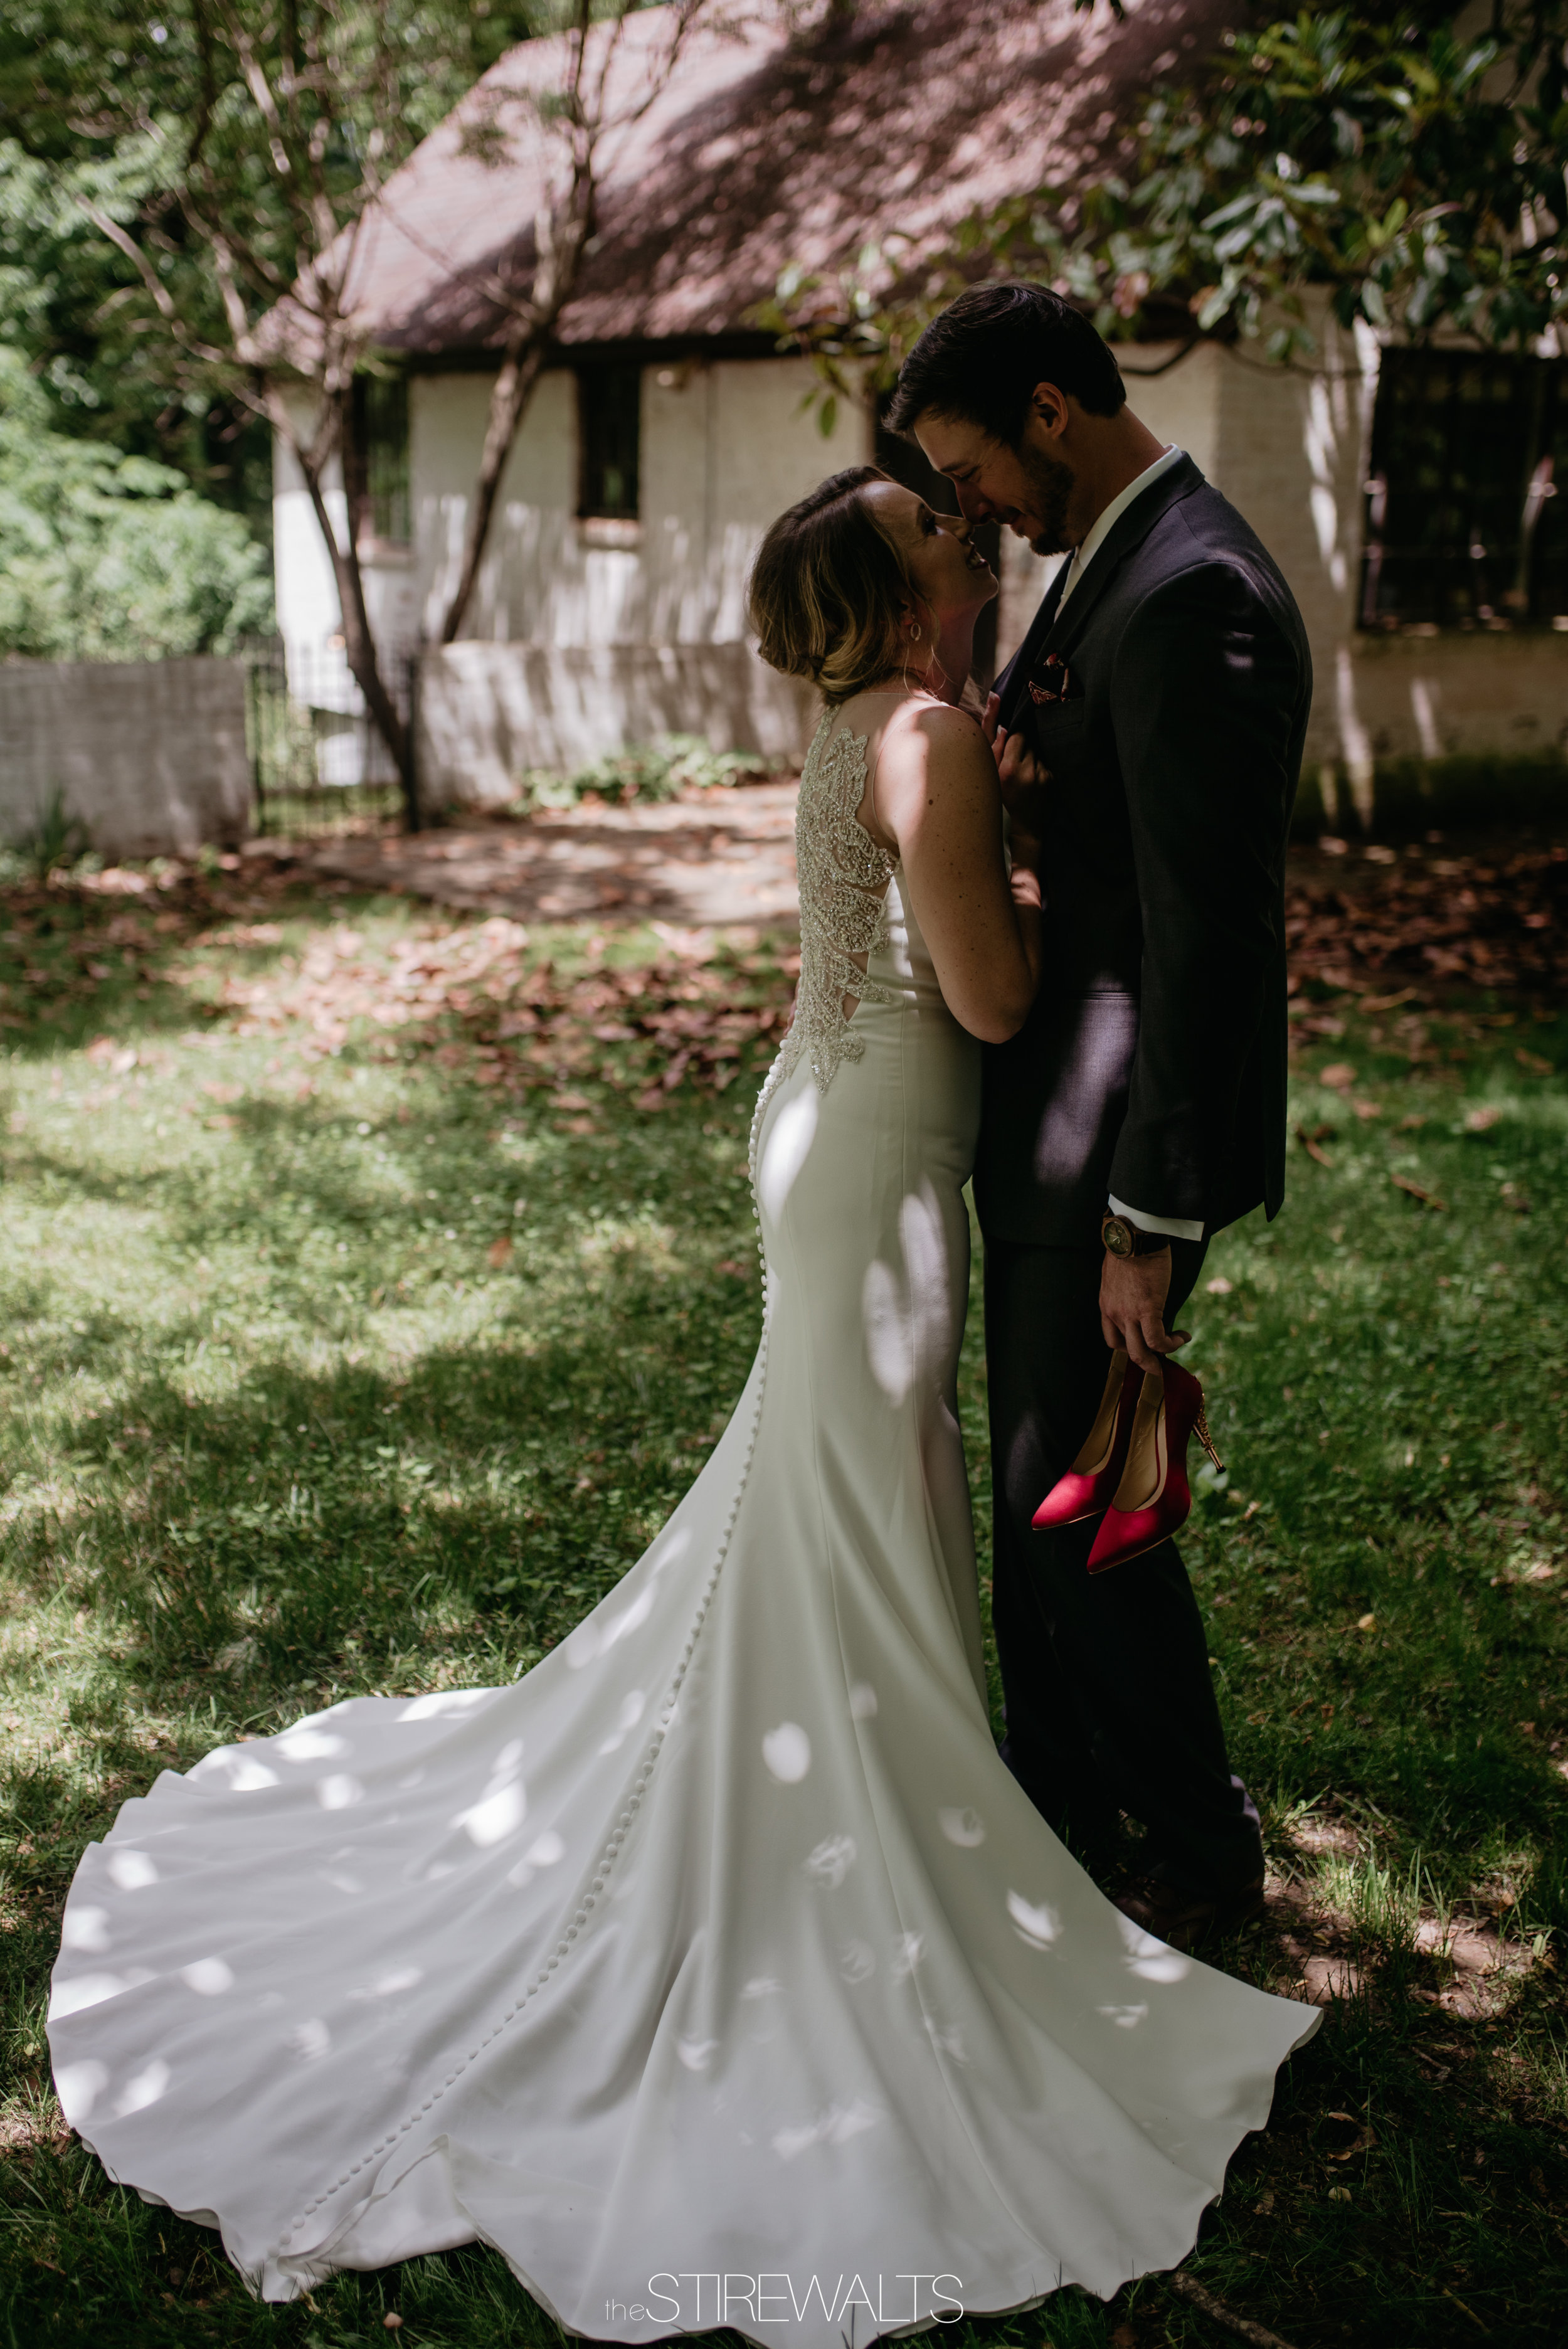 Kayla.Jay.Wedding.Blog.2018.©TheStirewalts-50.jpg